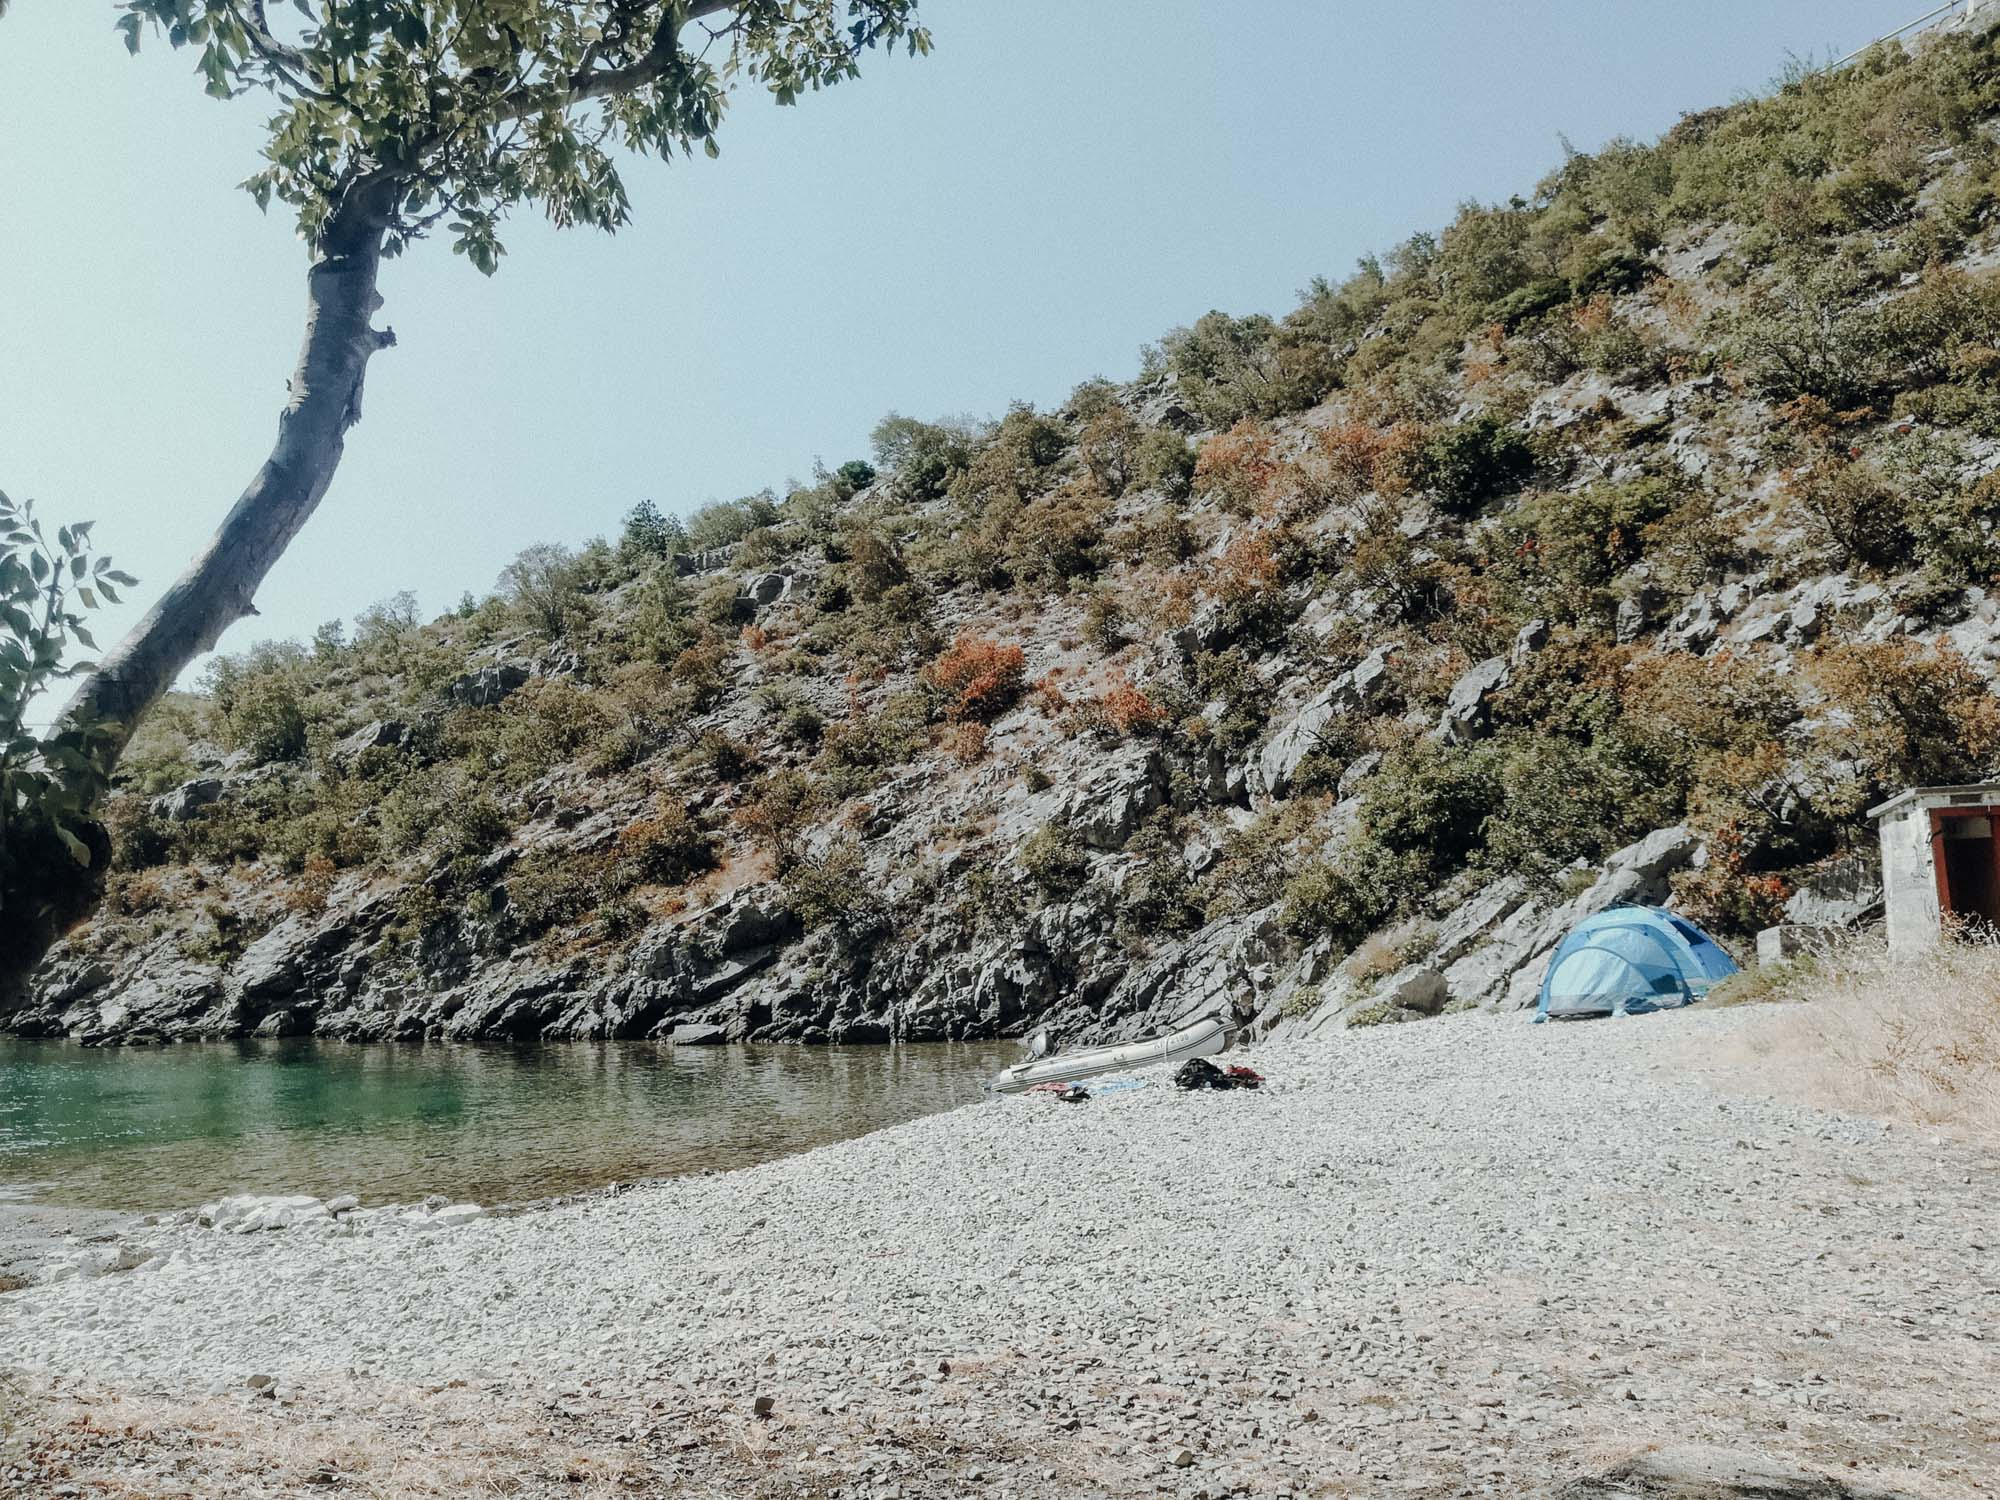 Wild Campen in Kroatien? Roadtrip durch Bosnien Montenegro Kroatien. Am Balkan vegan essen, reisen, fahren, packen. Dogdays of Summer vegan vintage Blog